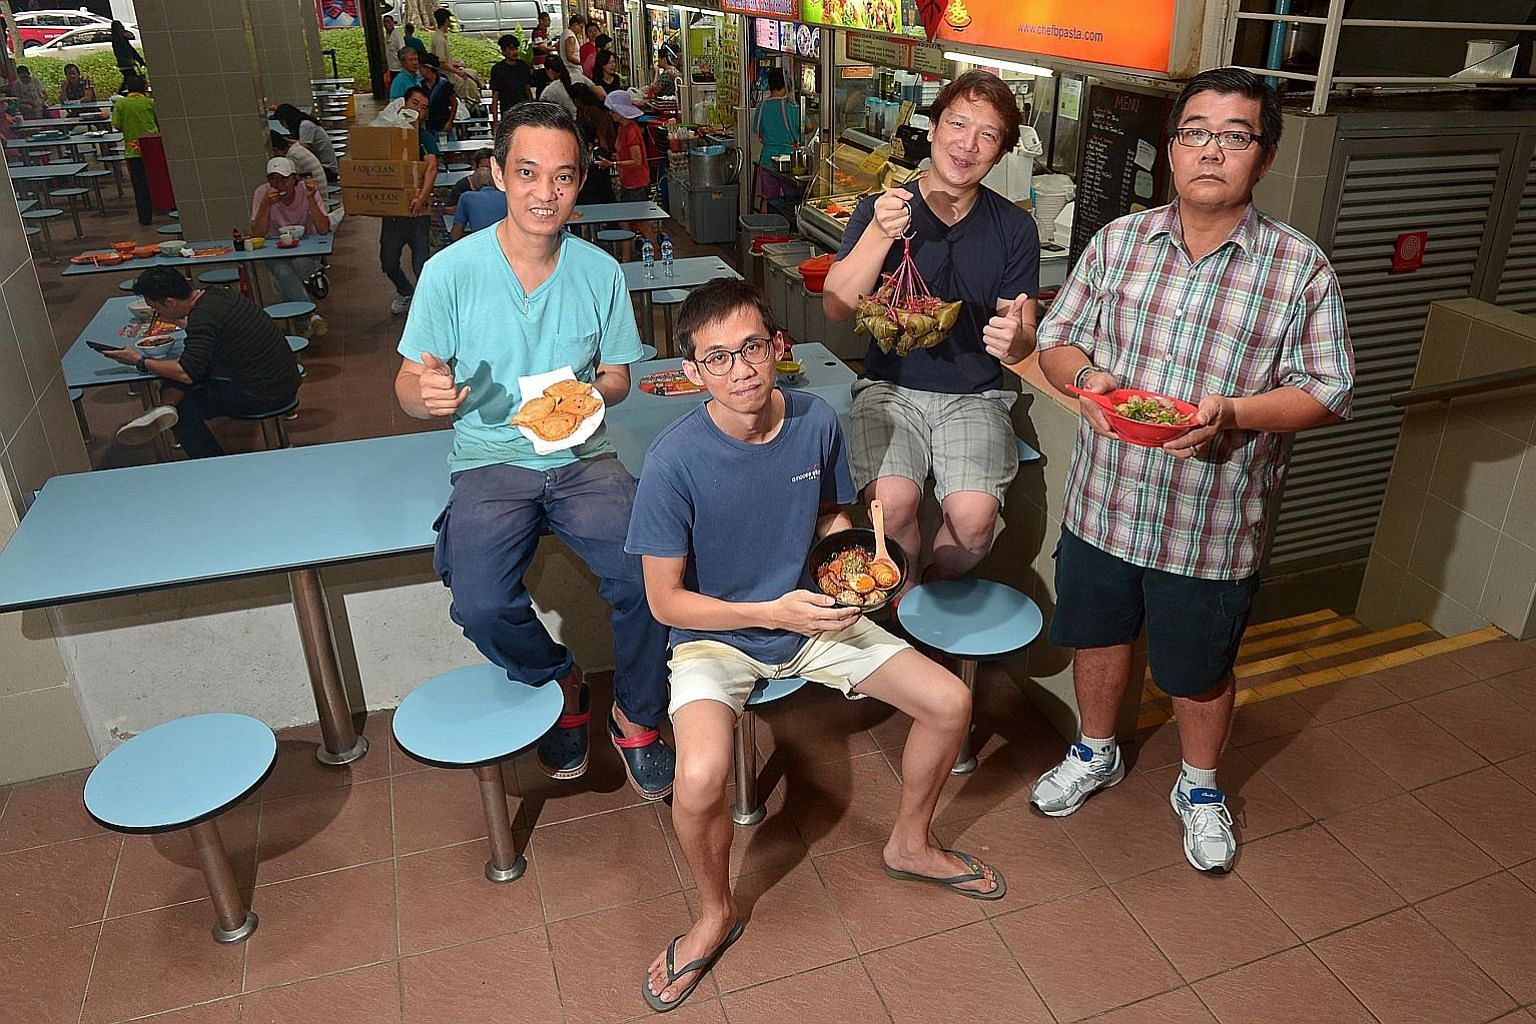 Four hawker stalls from Amoy Street Food Centre were given the Bib Gourmand rating in the inaugural Michelin Guide for Singapore, to be launched next Thursday. The rating rewards establishments offering high-quality meals for less than $45. The proud